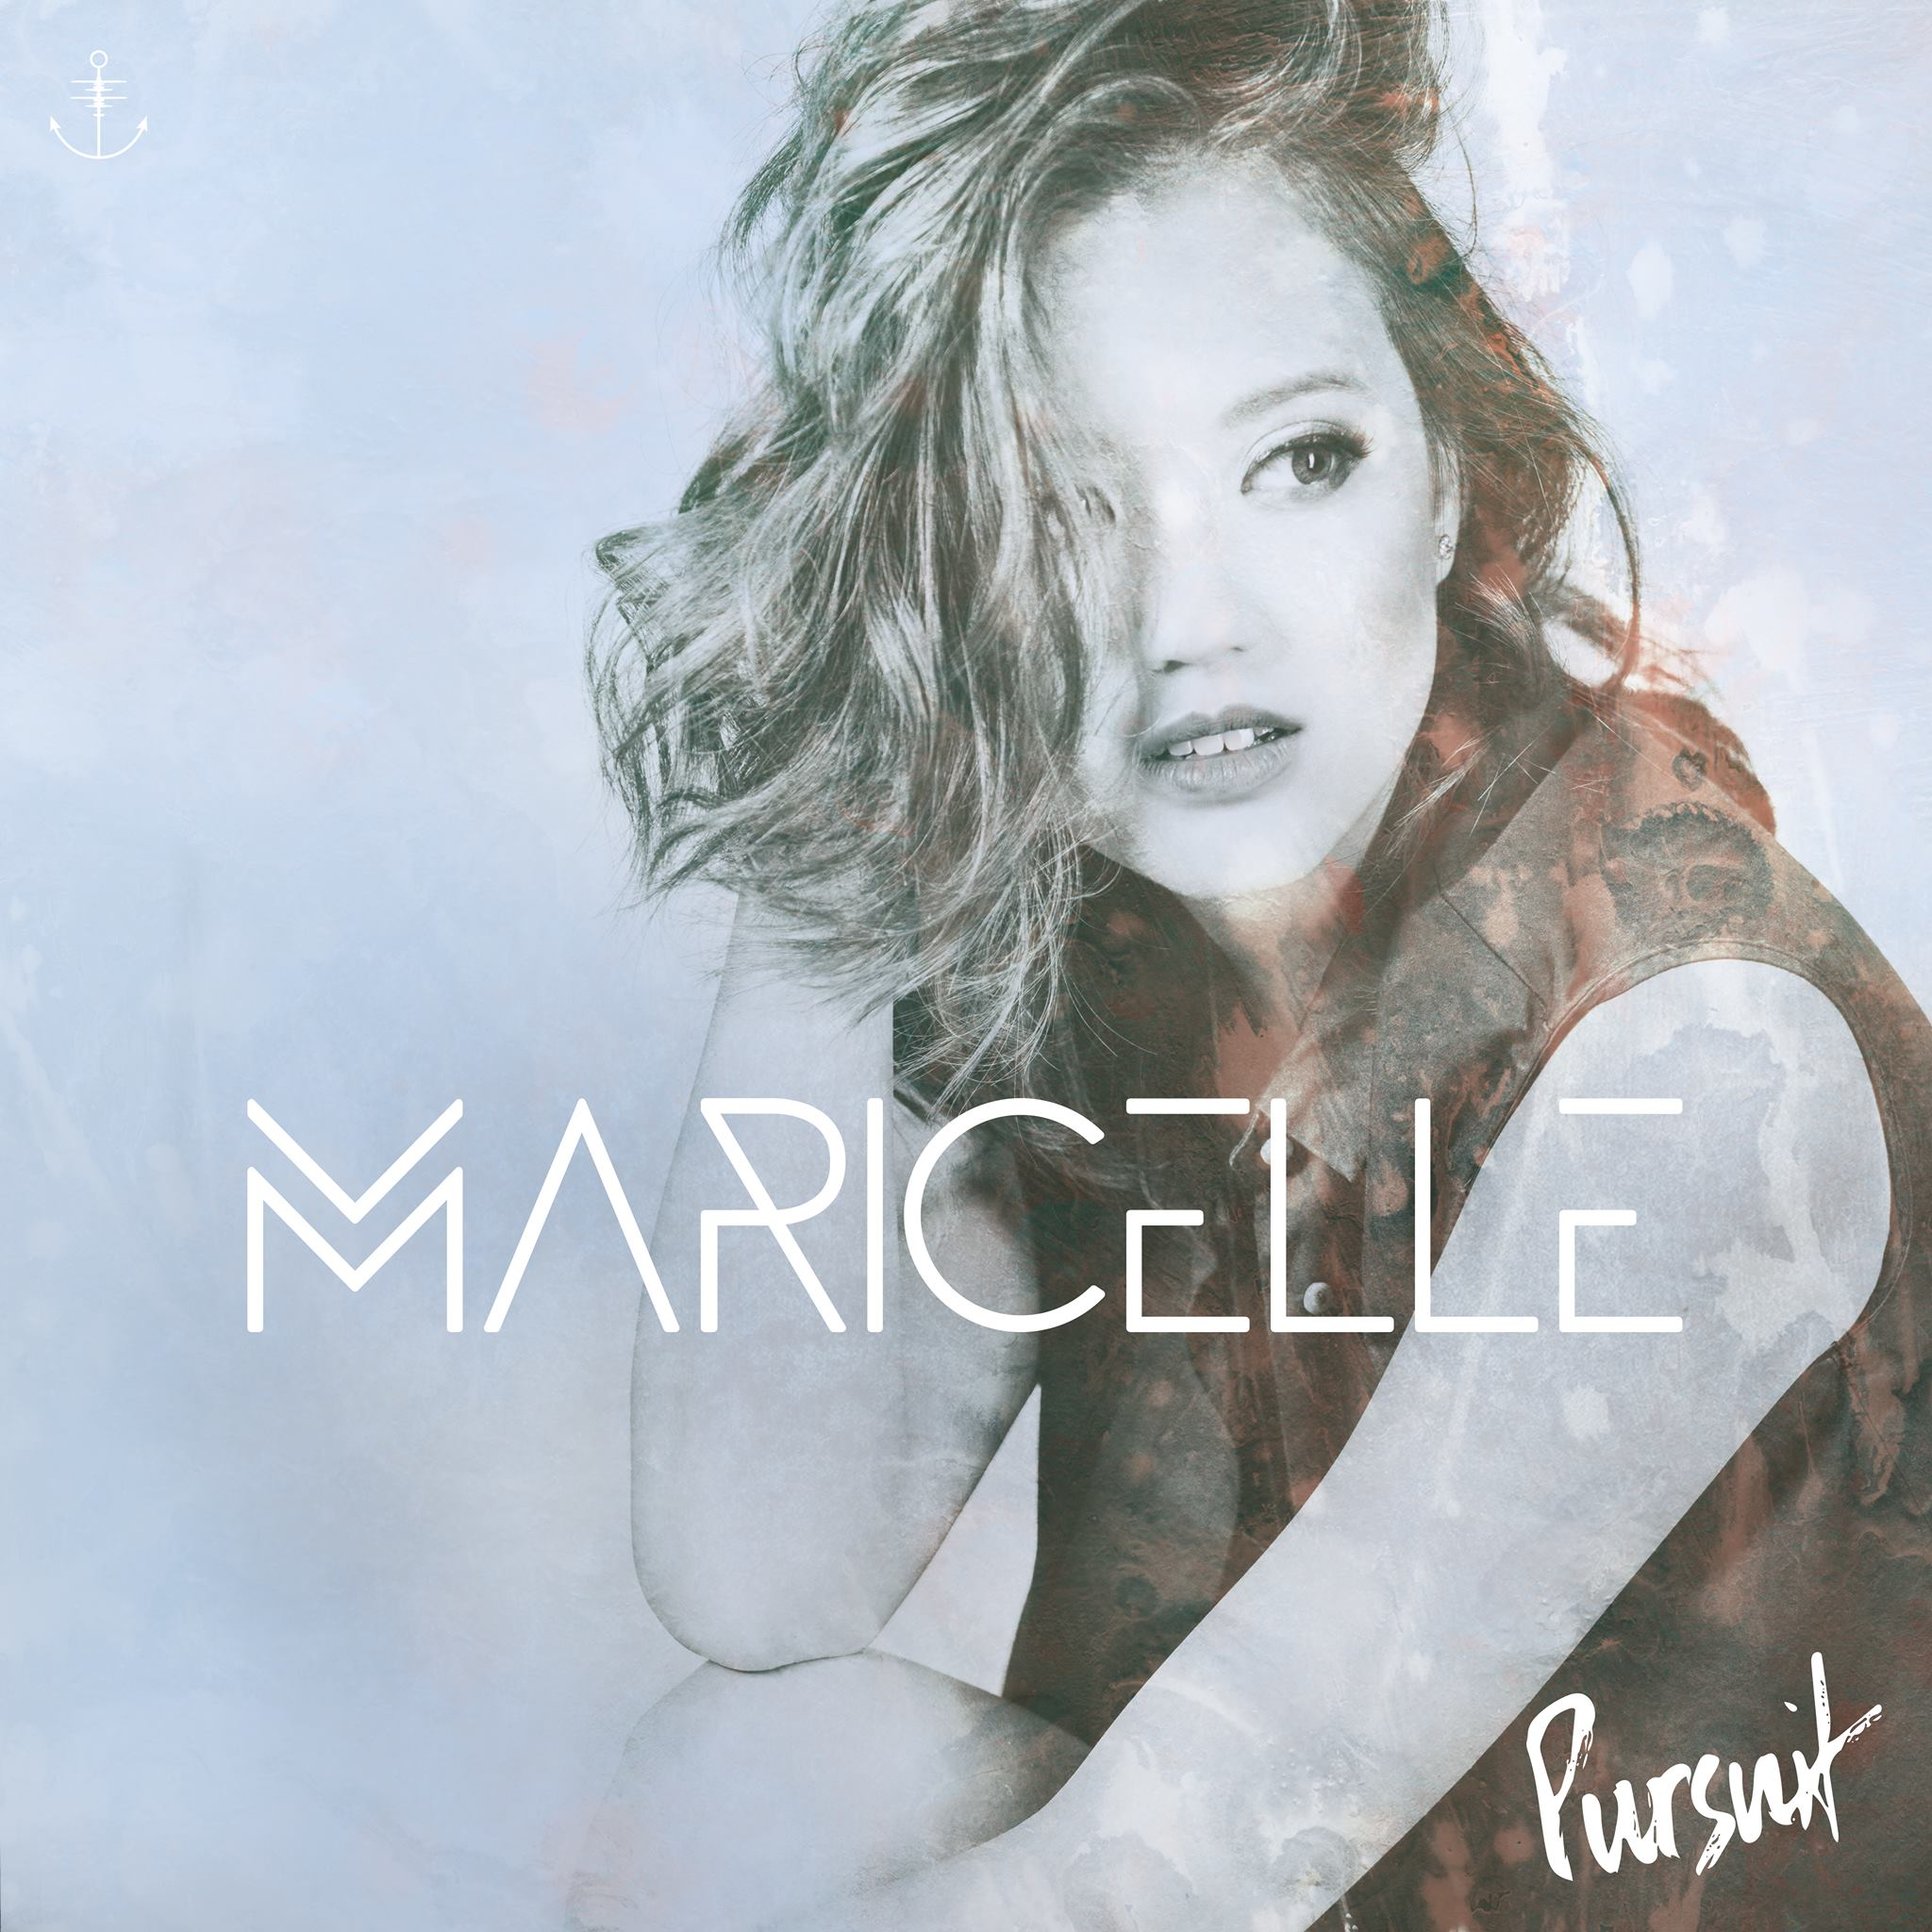 Maricelle